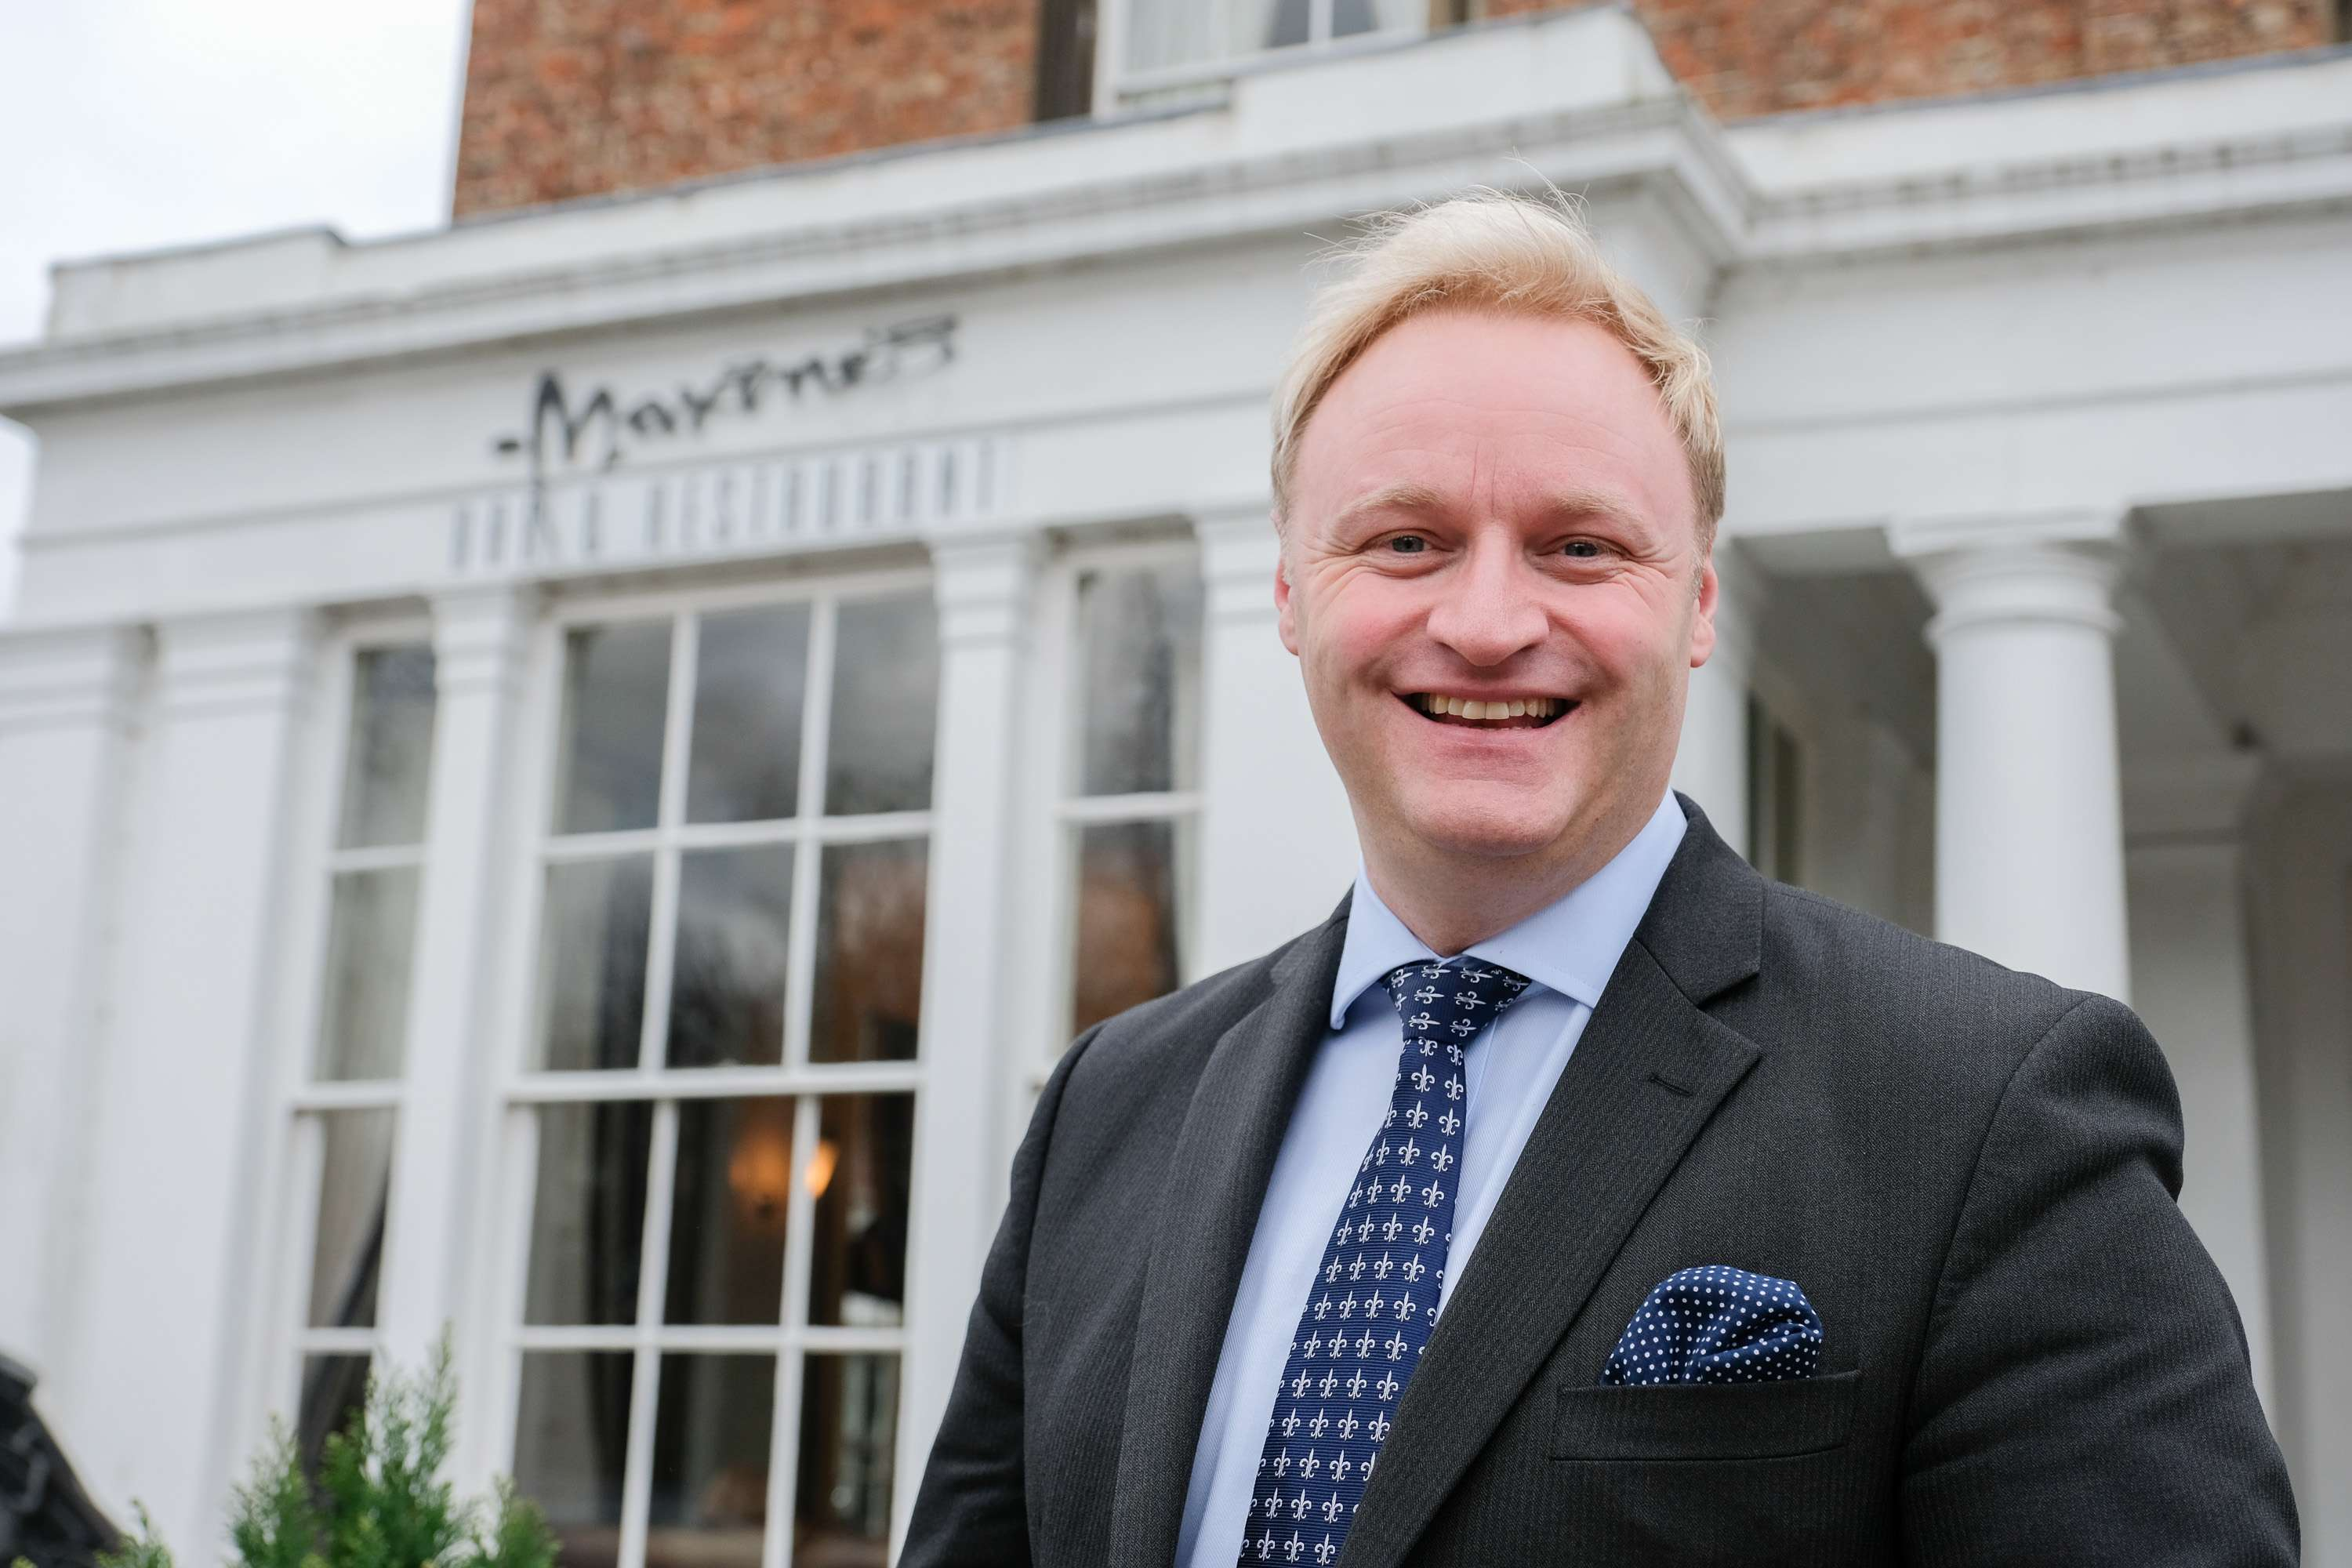 Bannatyne Hotel Darlington welcomes new General Manager